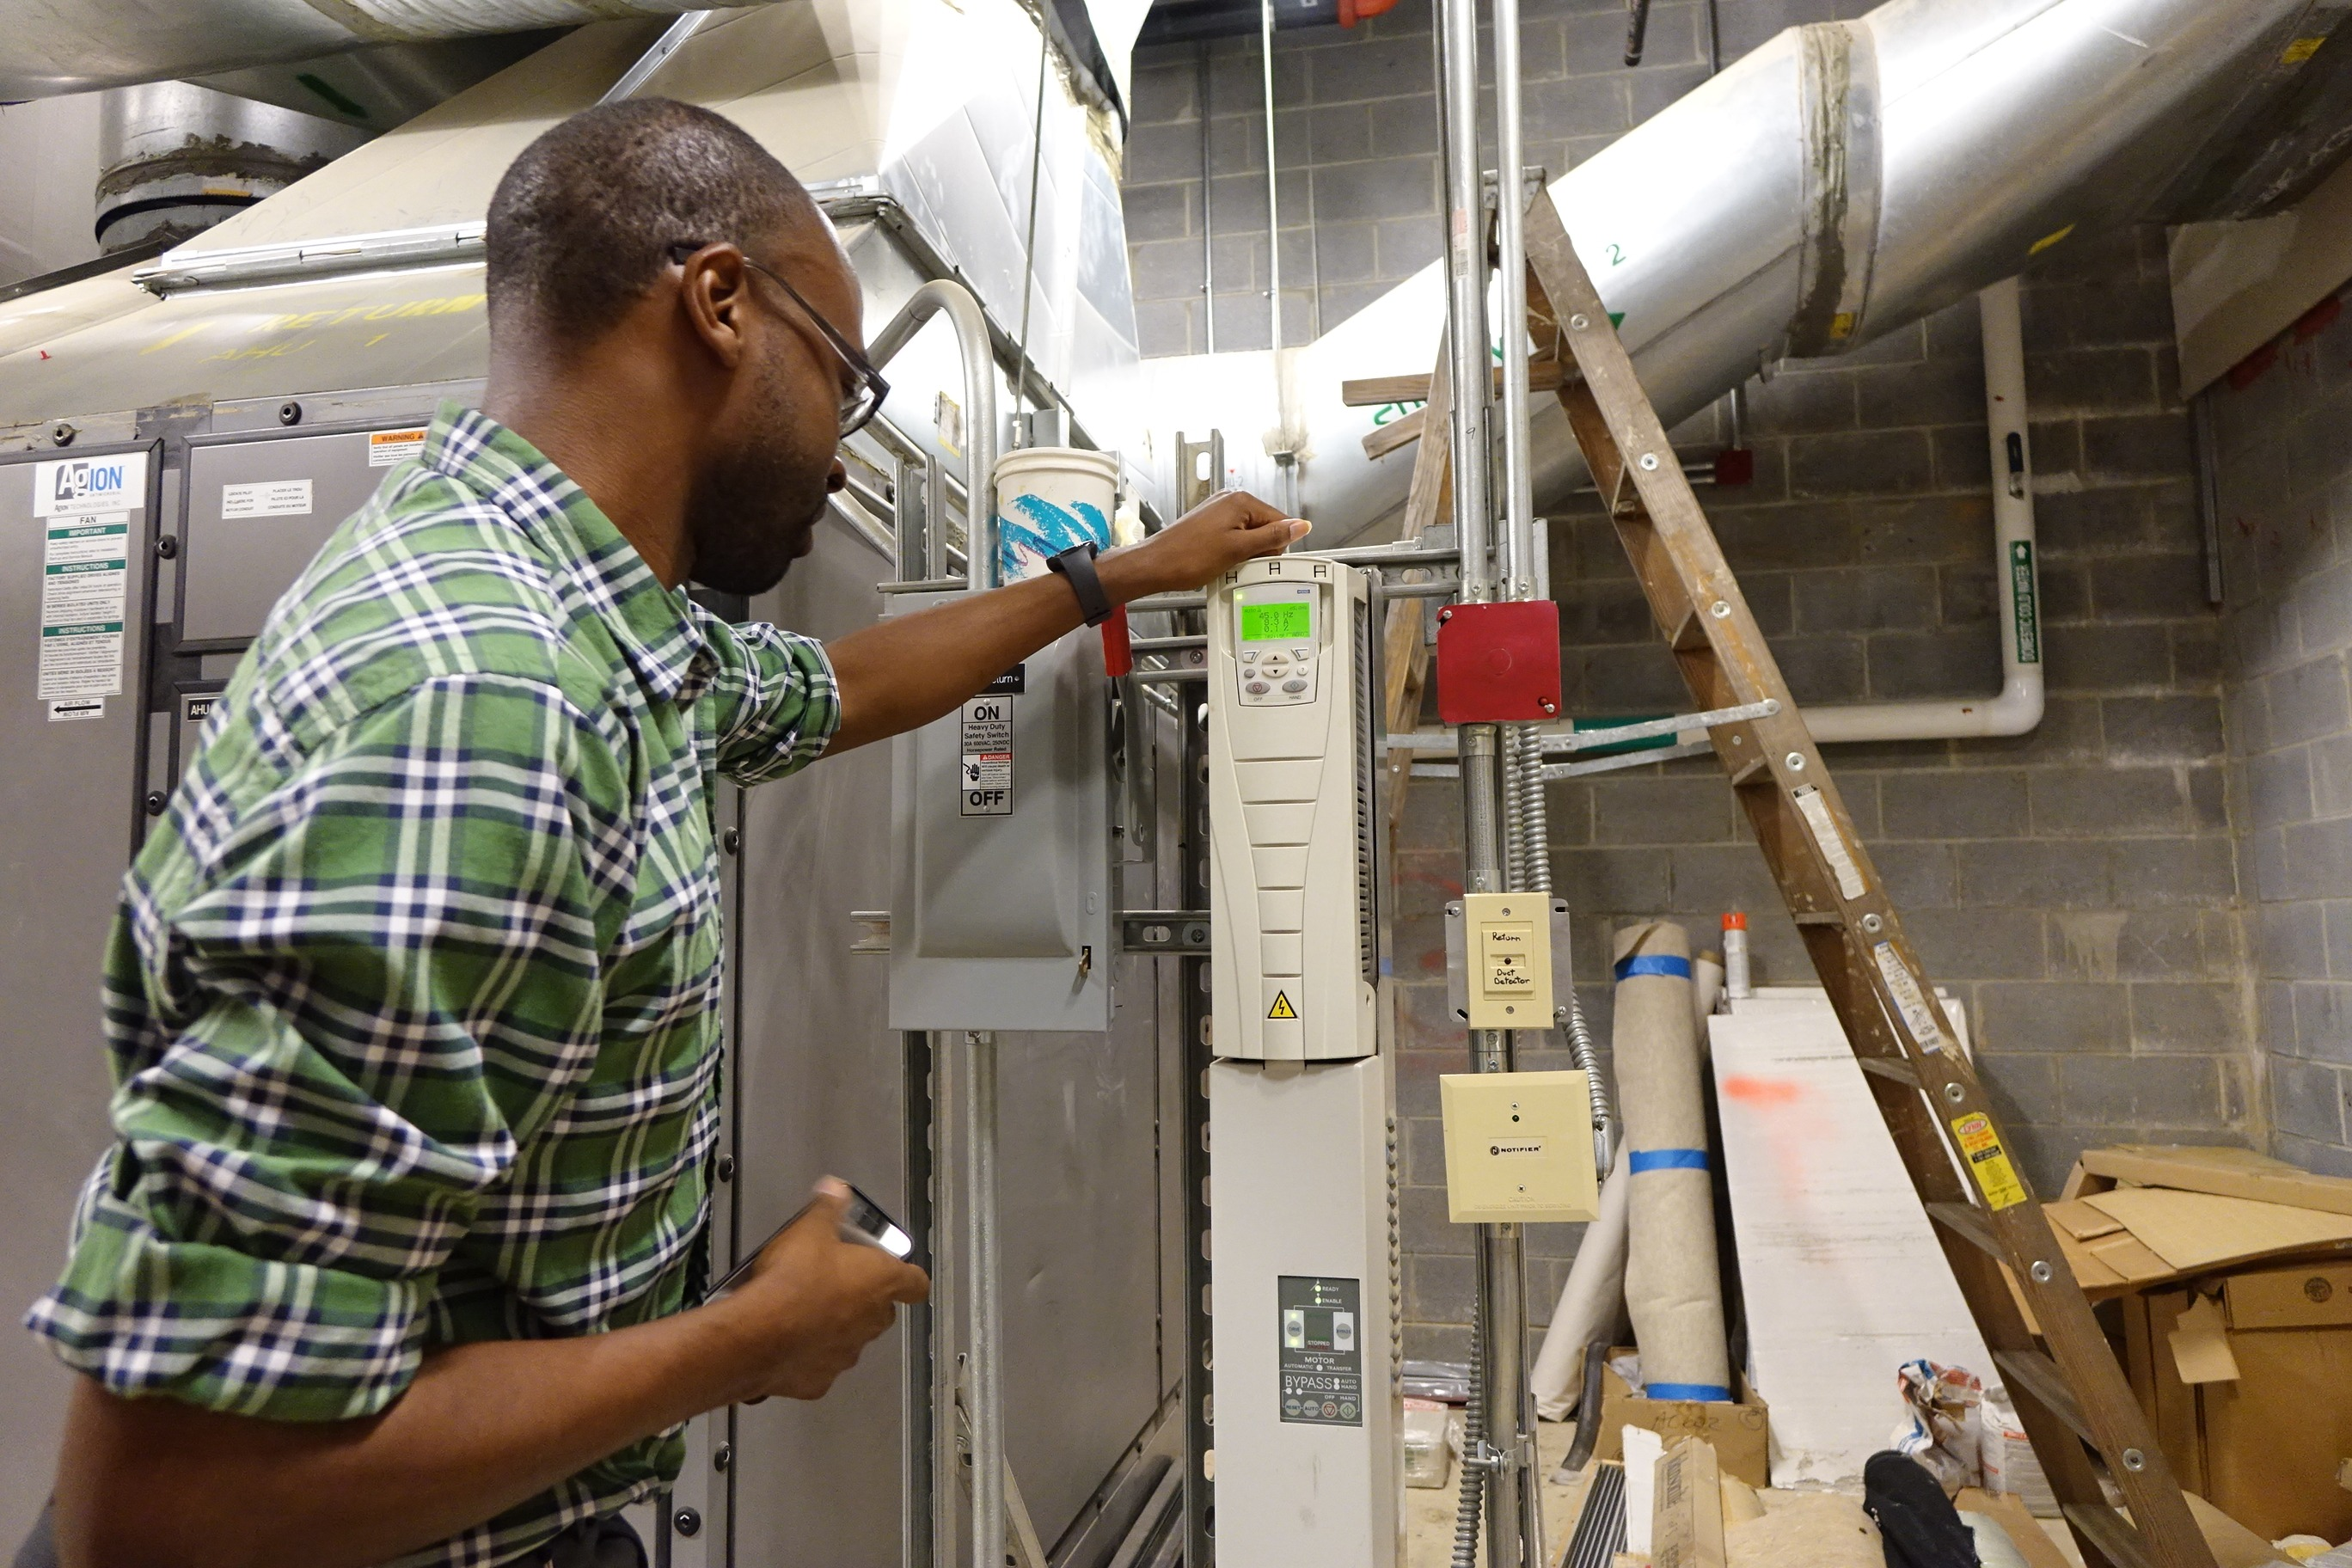 Saving energy and taxpayer dollars through continuous improvement of County operations